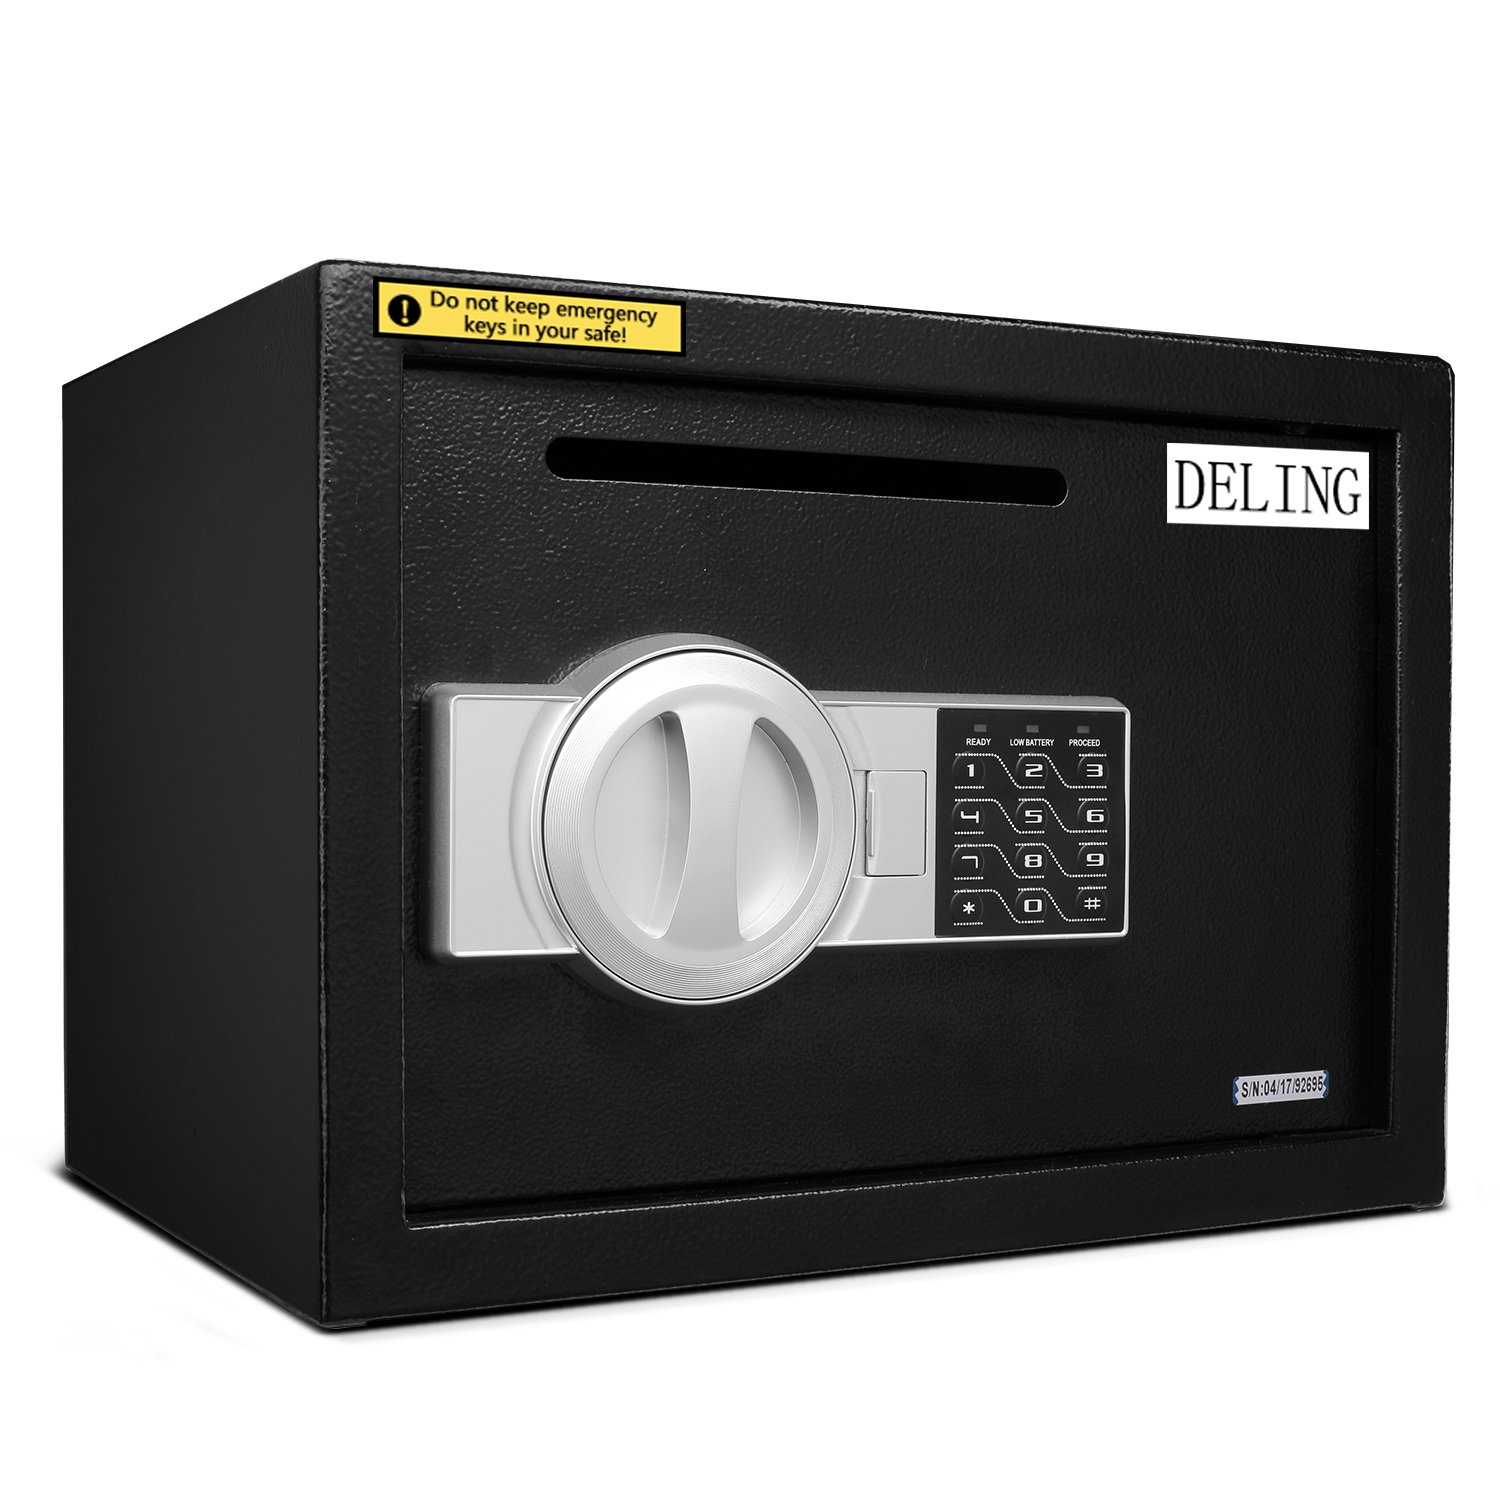 HYD-Parts Digital Security Safety Box,Money Gunsafe Cabinet Box for Home Office Hotel (25) by HYD-Parts (Image #4)